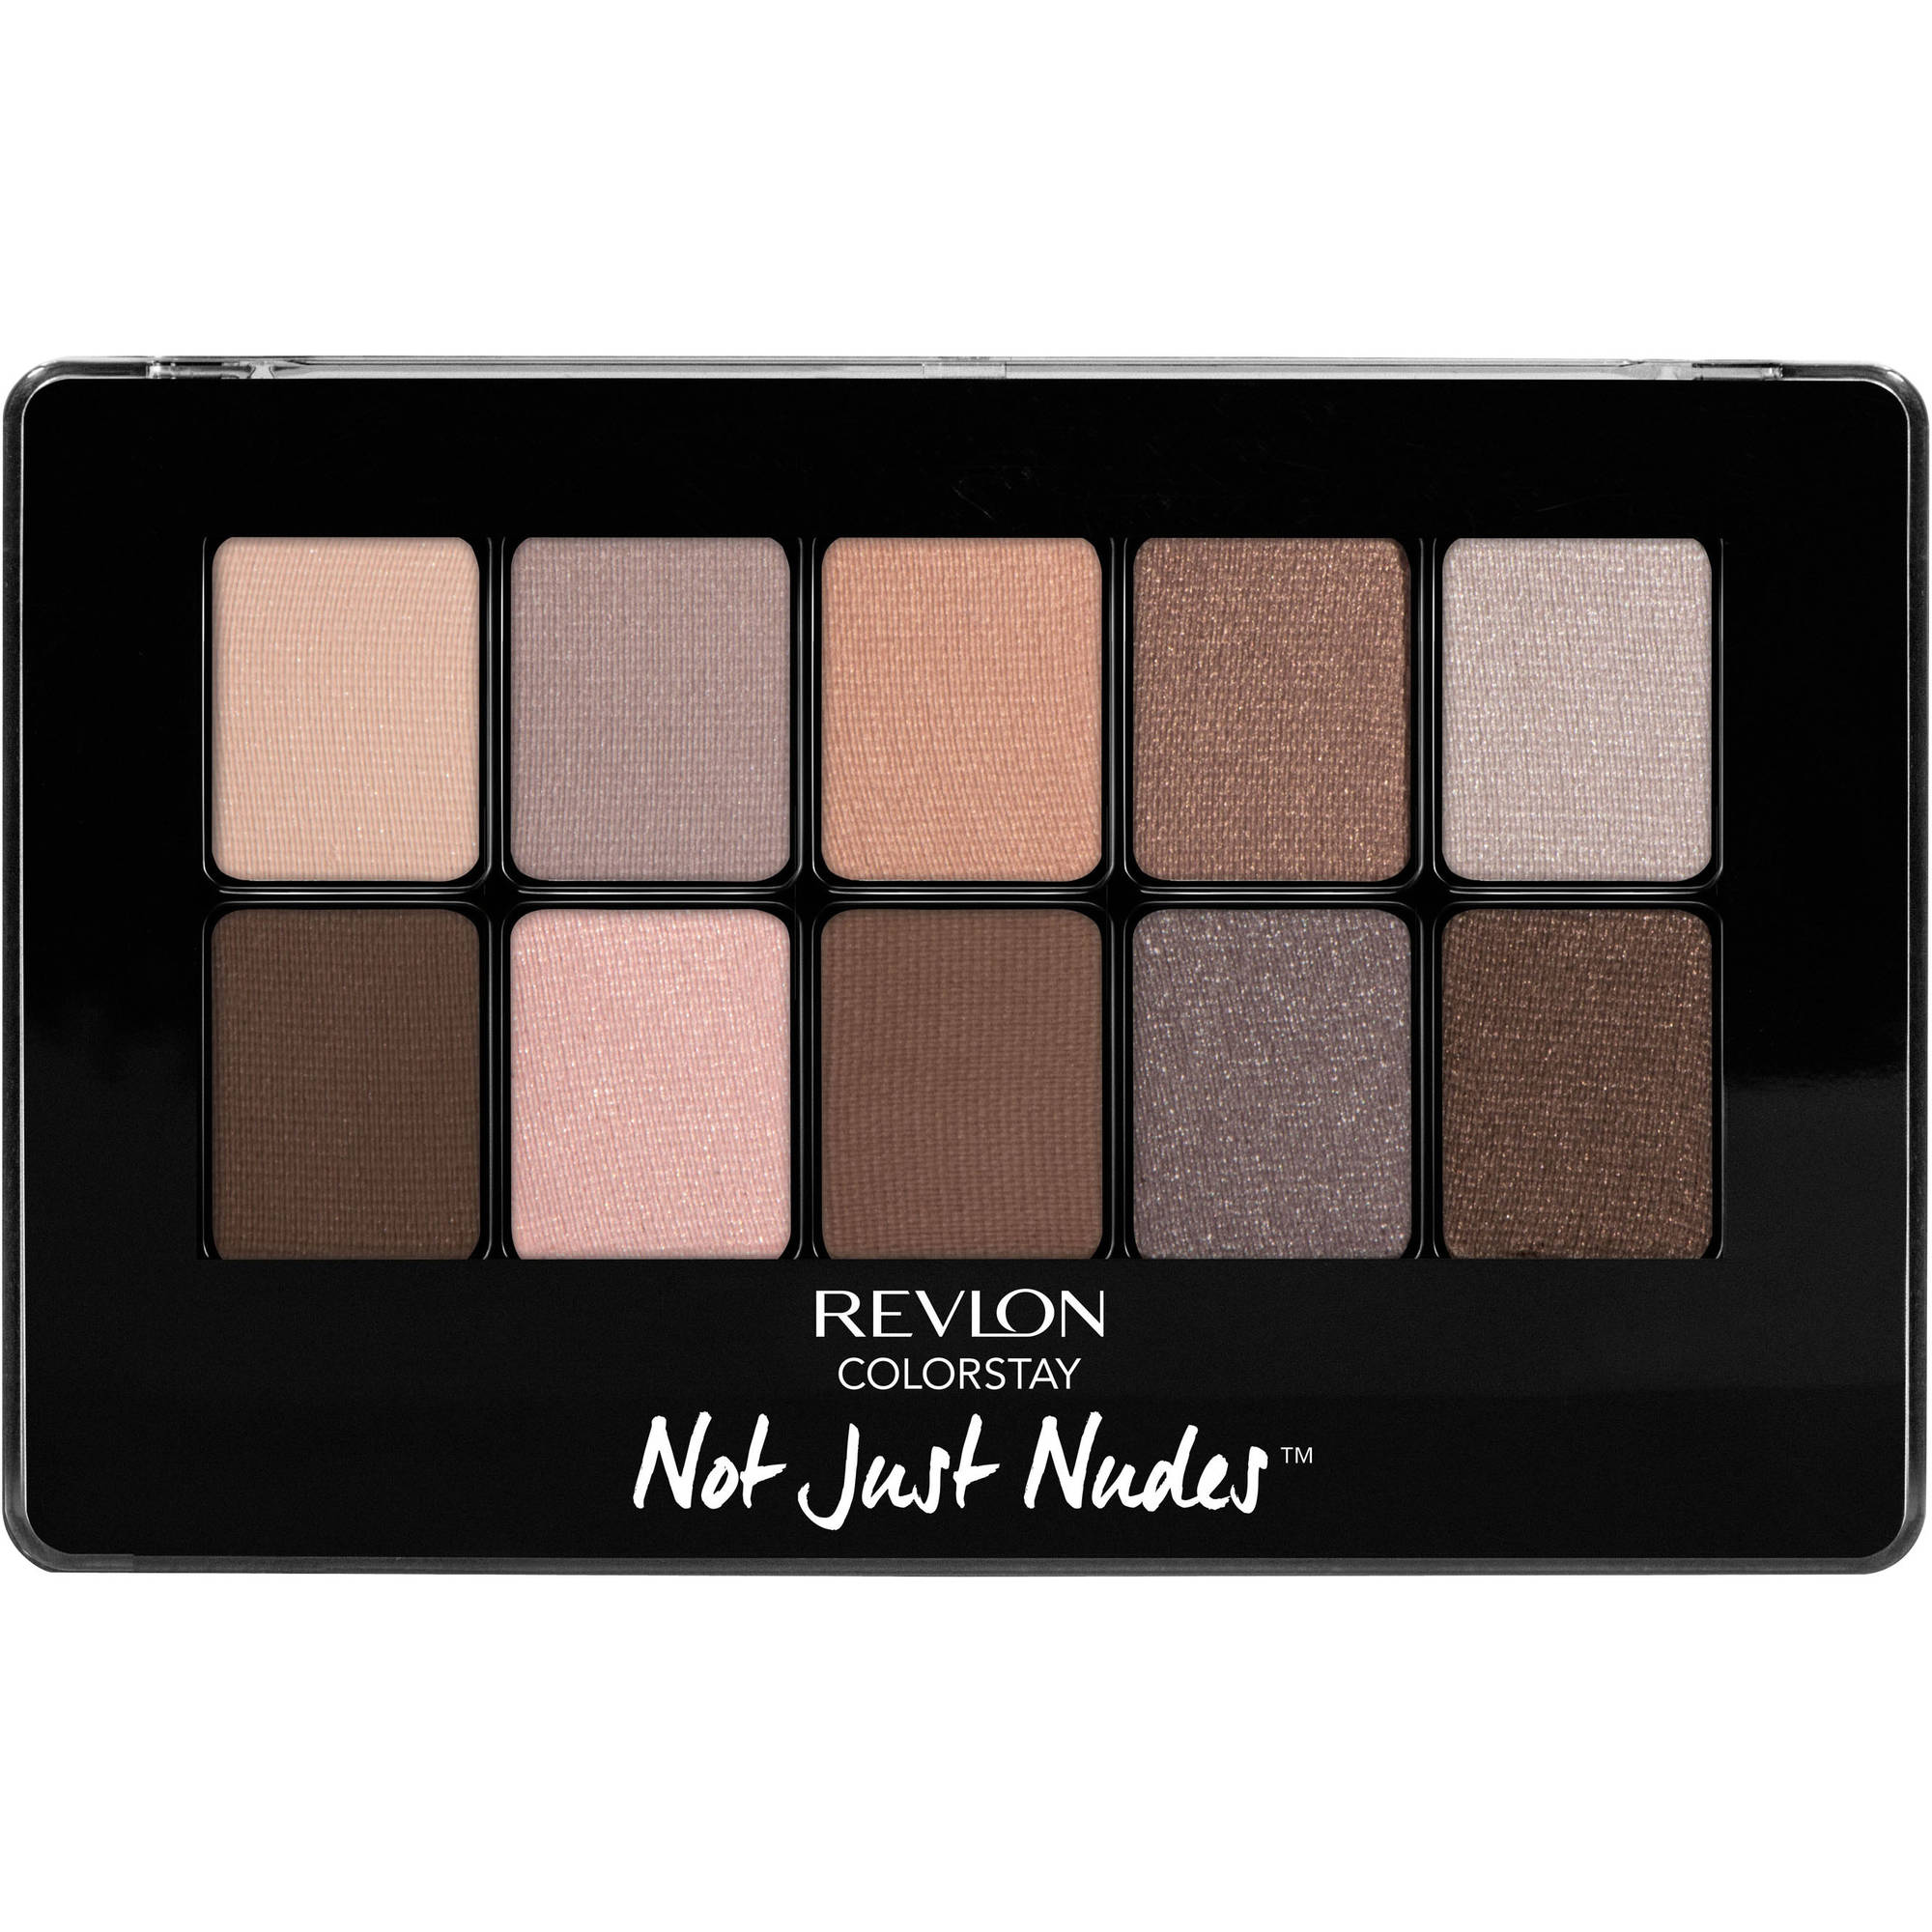 Revlon ColorStay Not Just Nudes Eye Shadow Palette, 0.5 oz